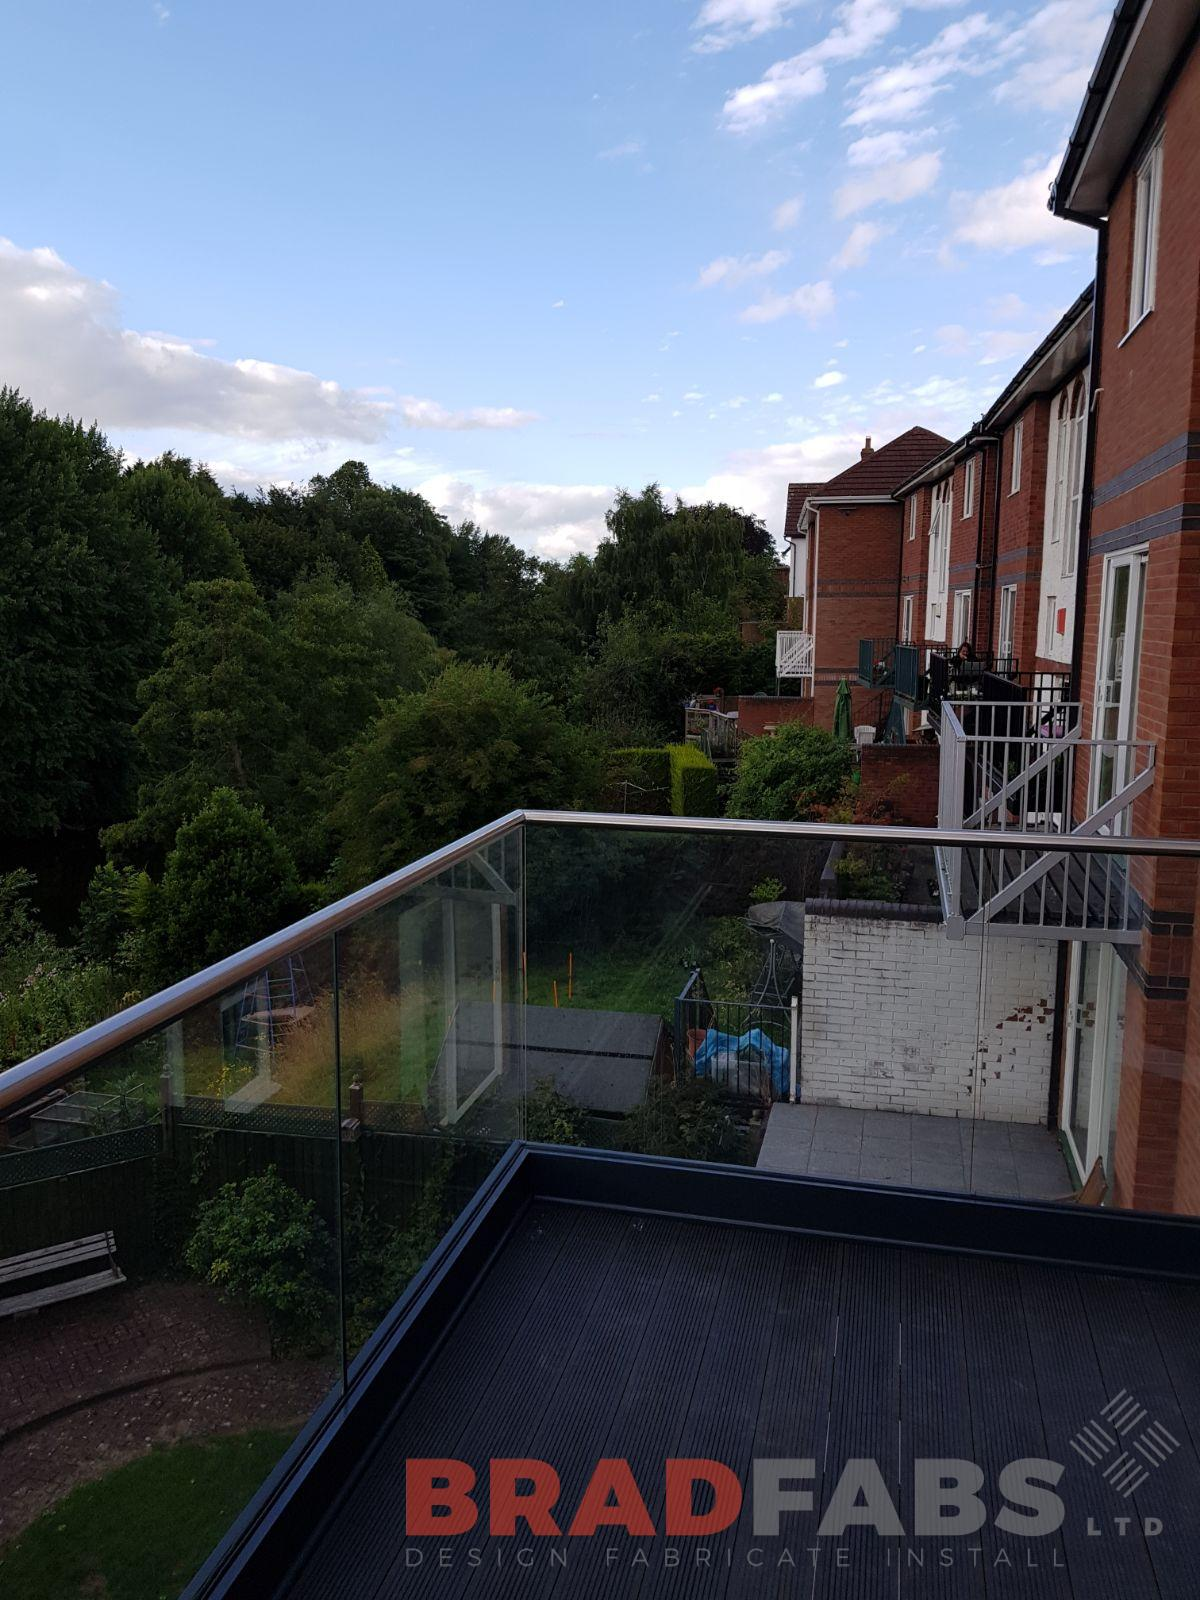 stainless steel top rail, channel system glass balustrade designed by bradfabs